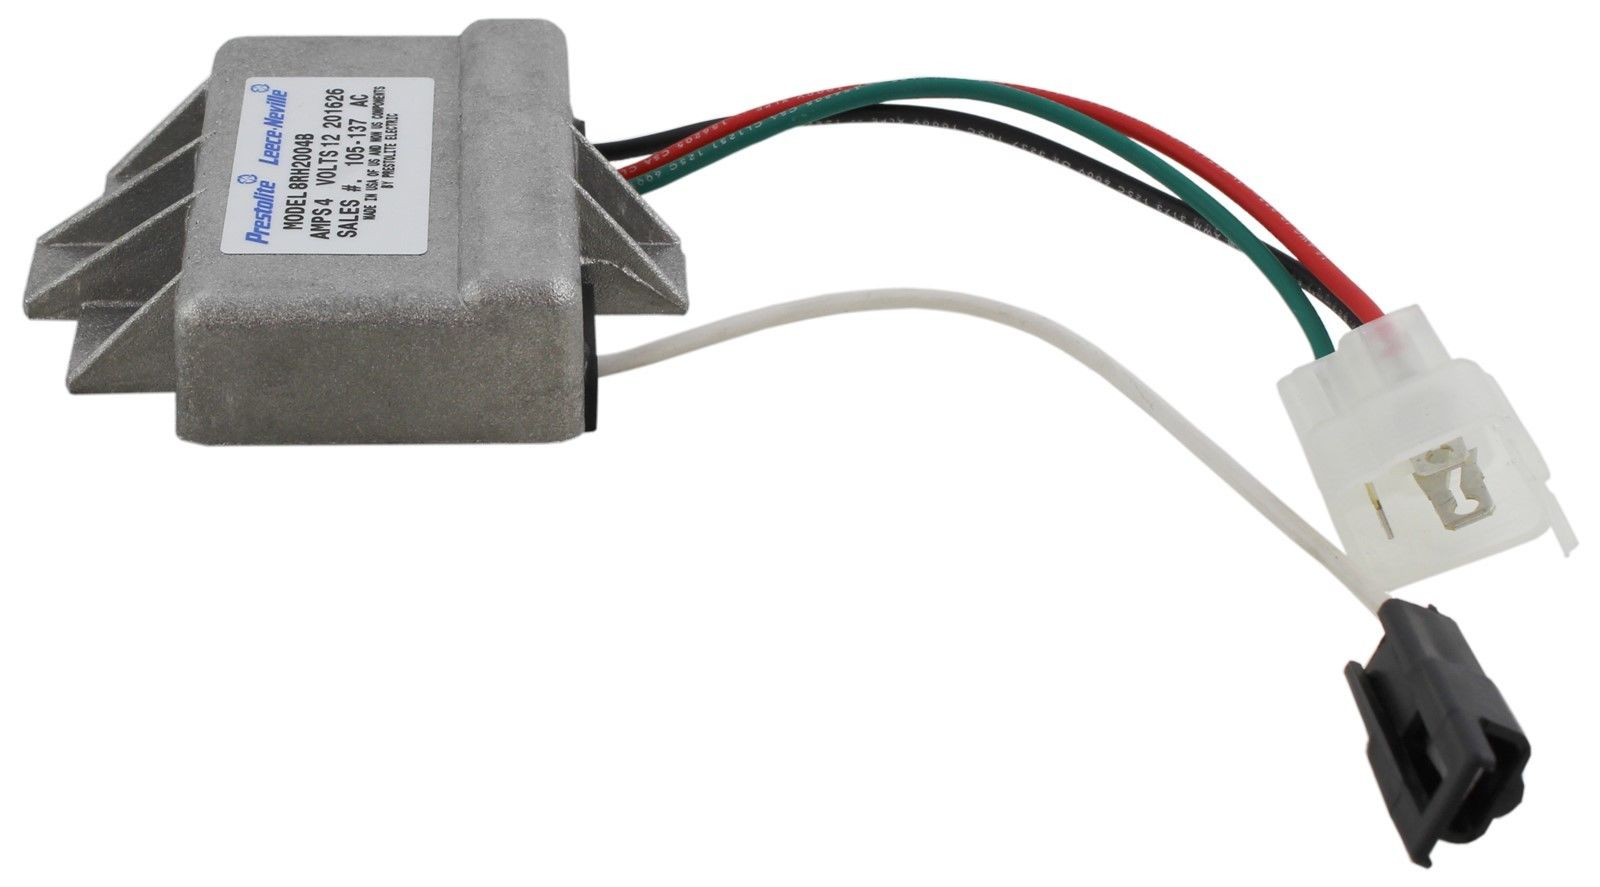 hight resolution of new oem voltage regulator for john deere applications ar77485 12 volt